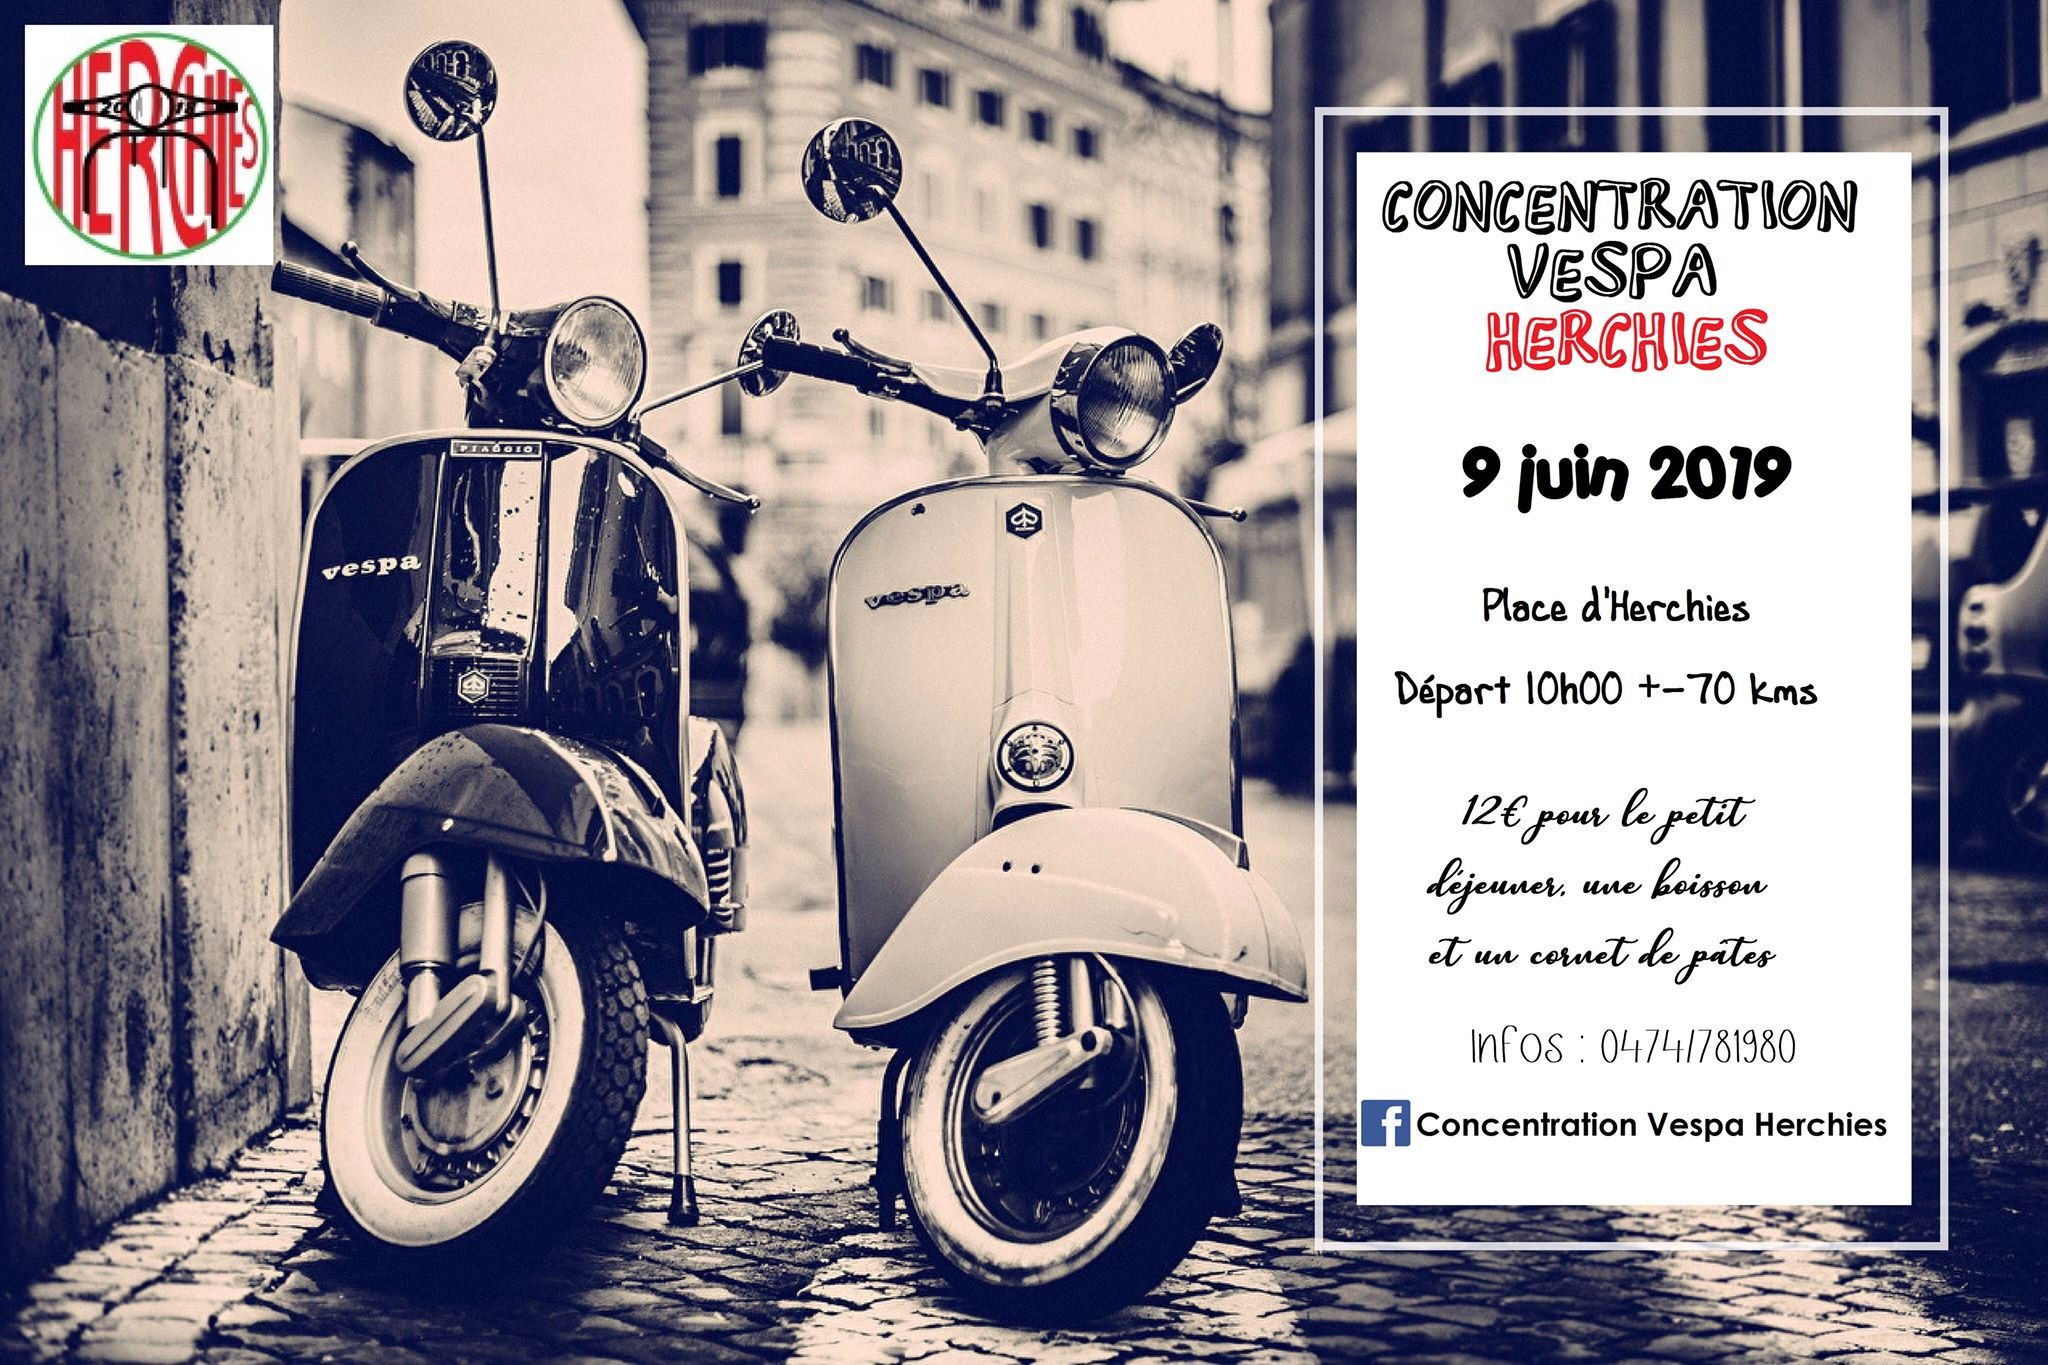 Concentration Vespa Herchies 2019